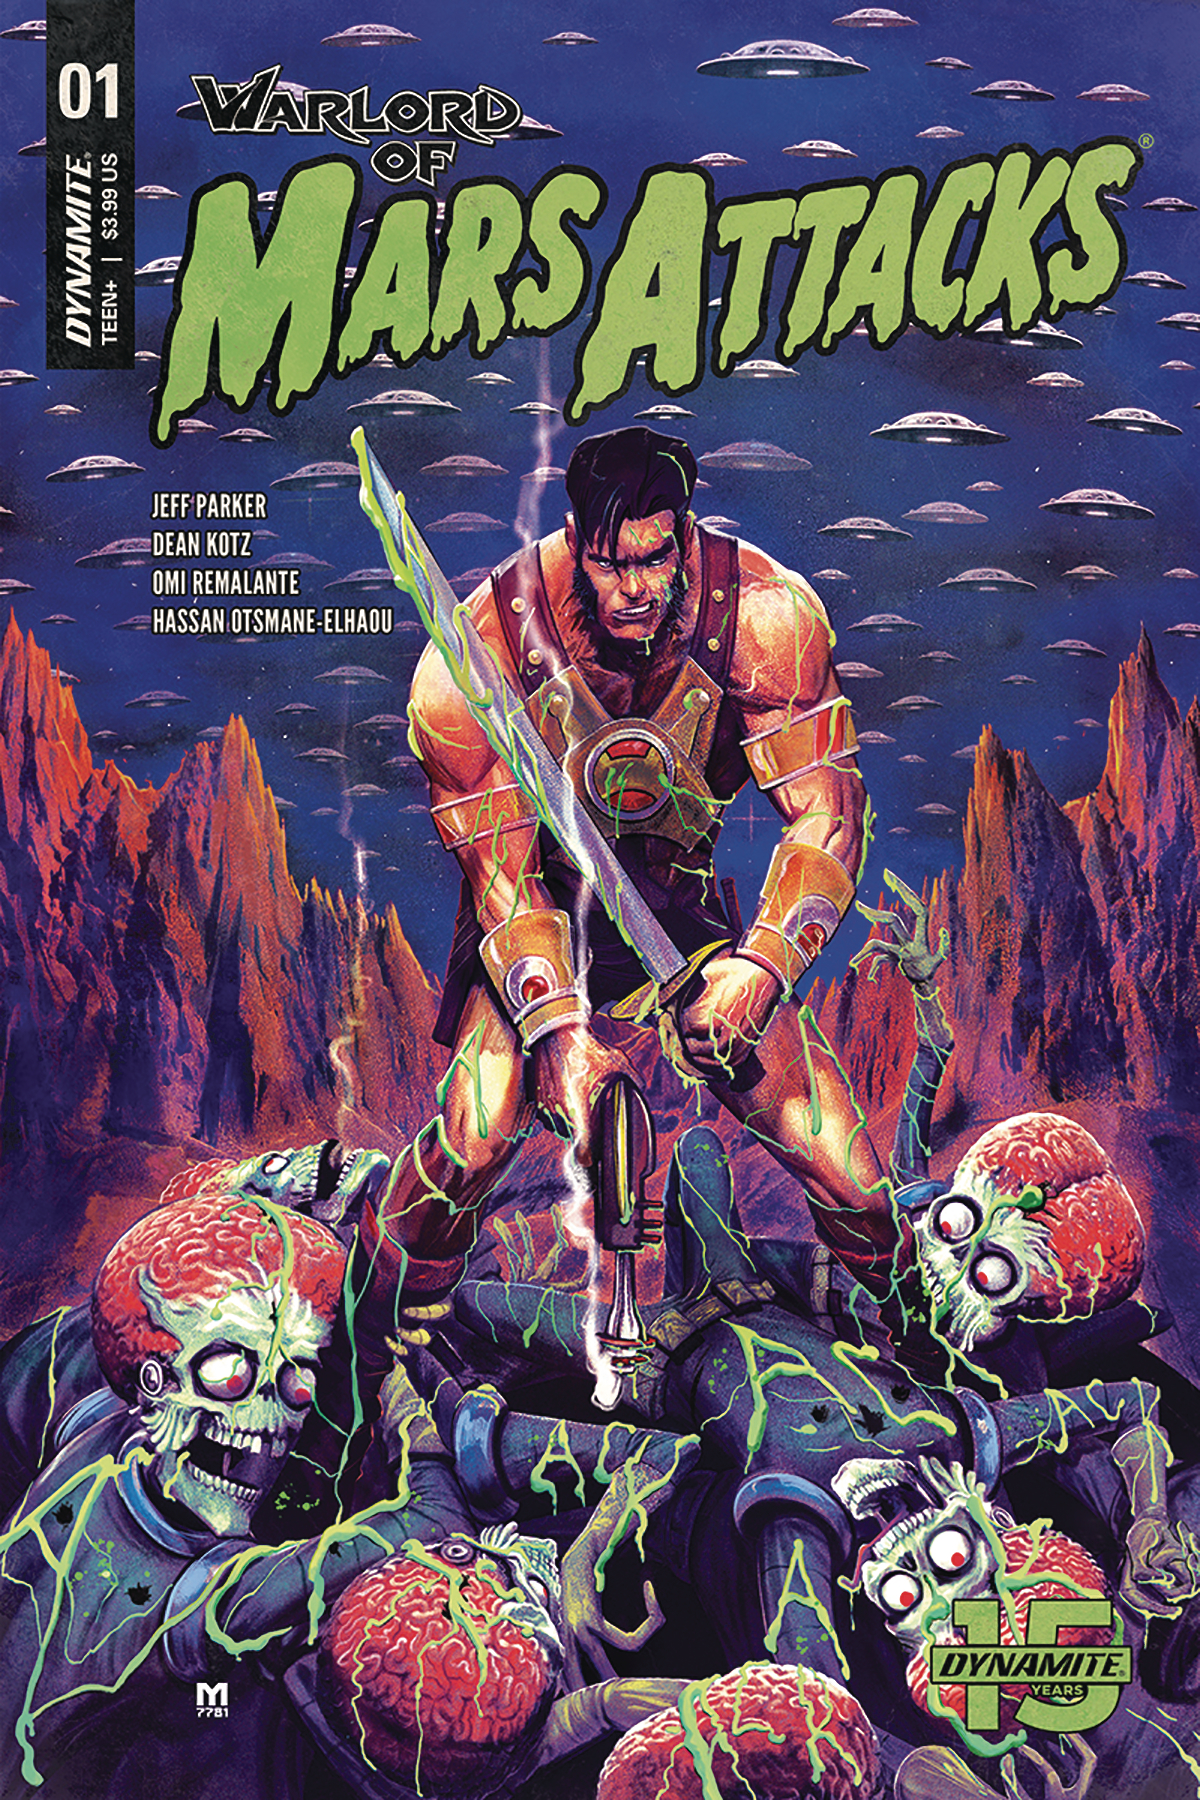 WARLORD OF MARS ATTACKS #1 CVR B D`ALFONSO